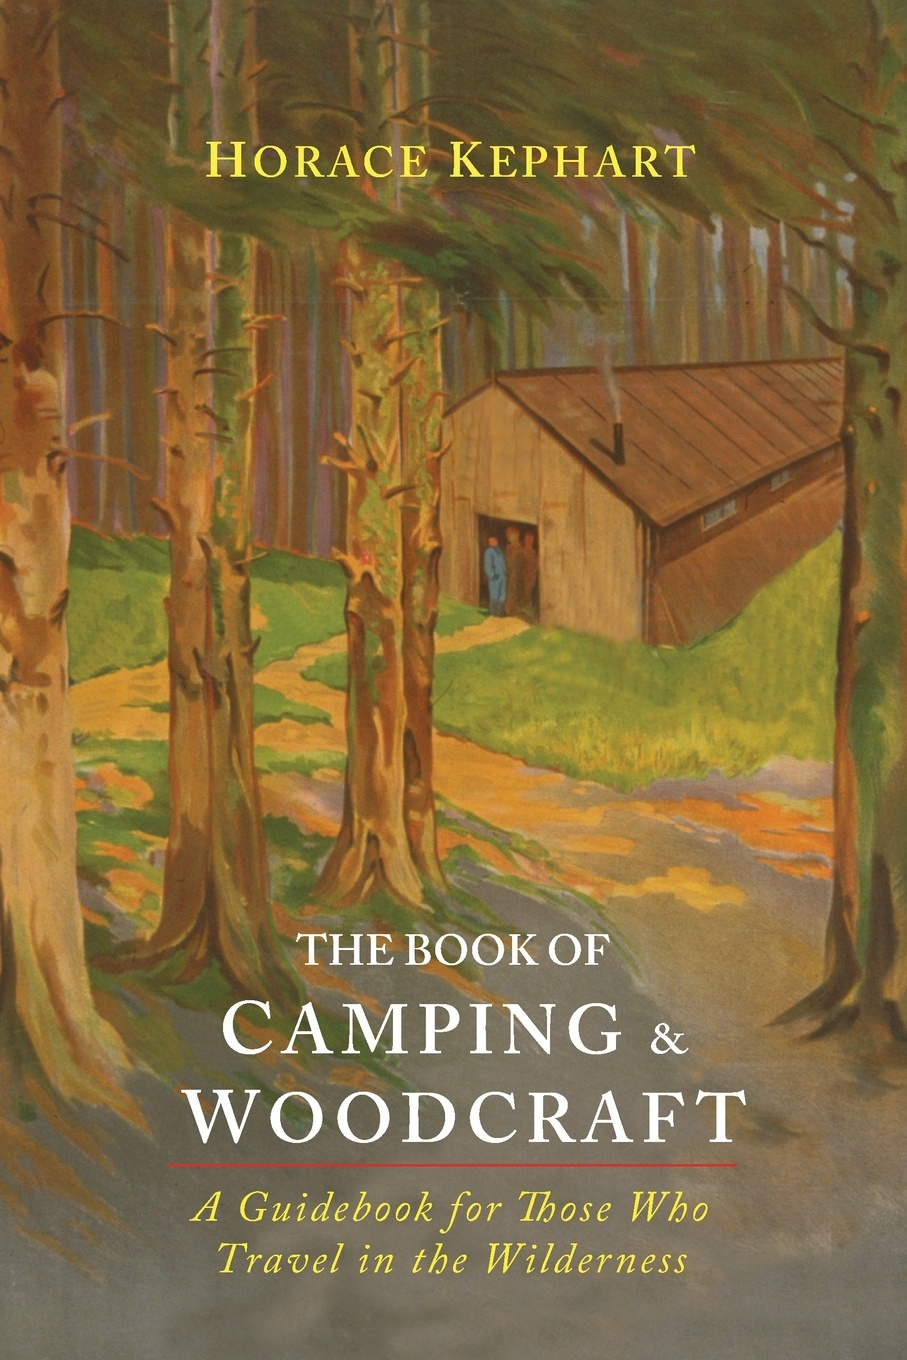 Horace Kephart The Book of Camping & Woodcraft. A Guidebook For Those Who Travel In The Wilderness